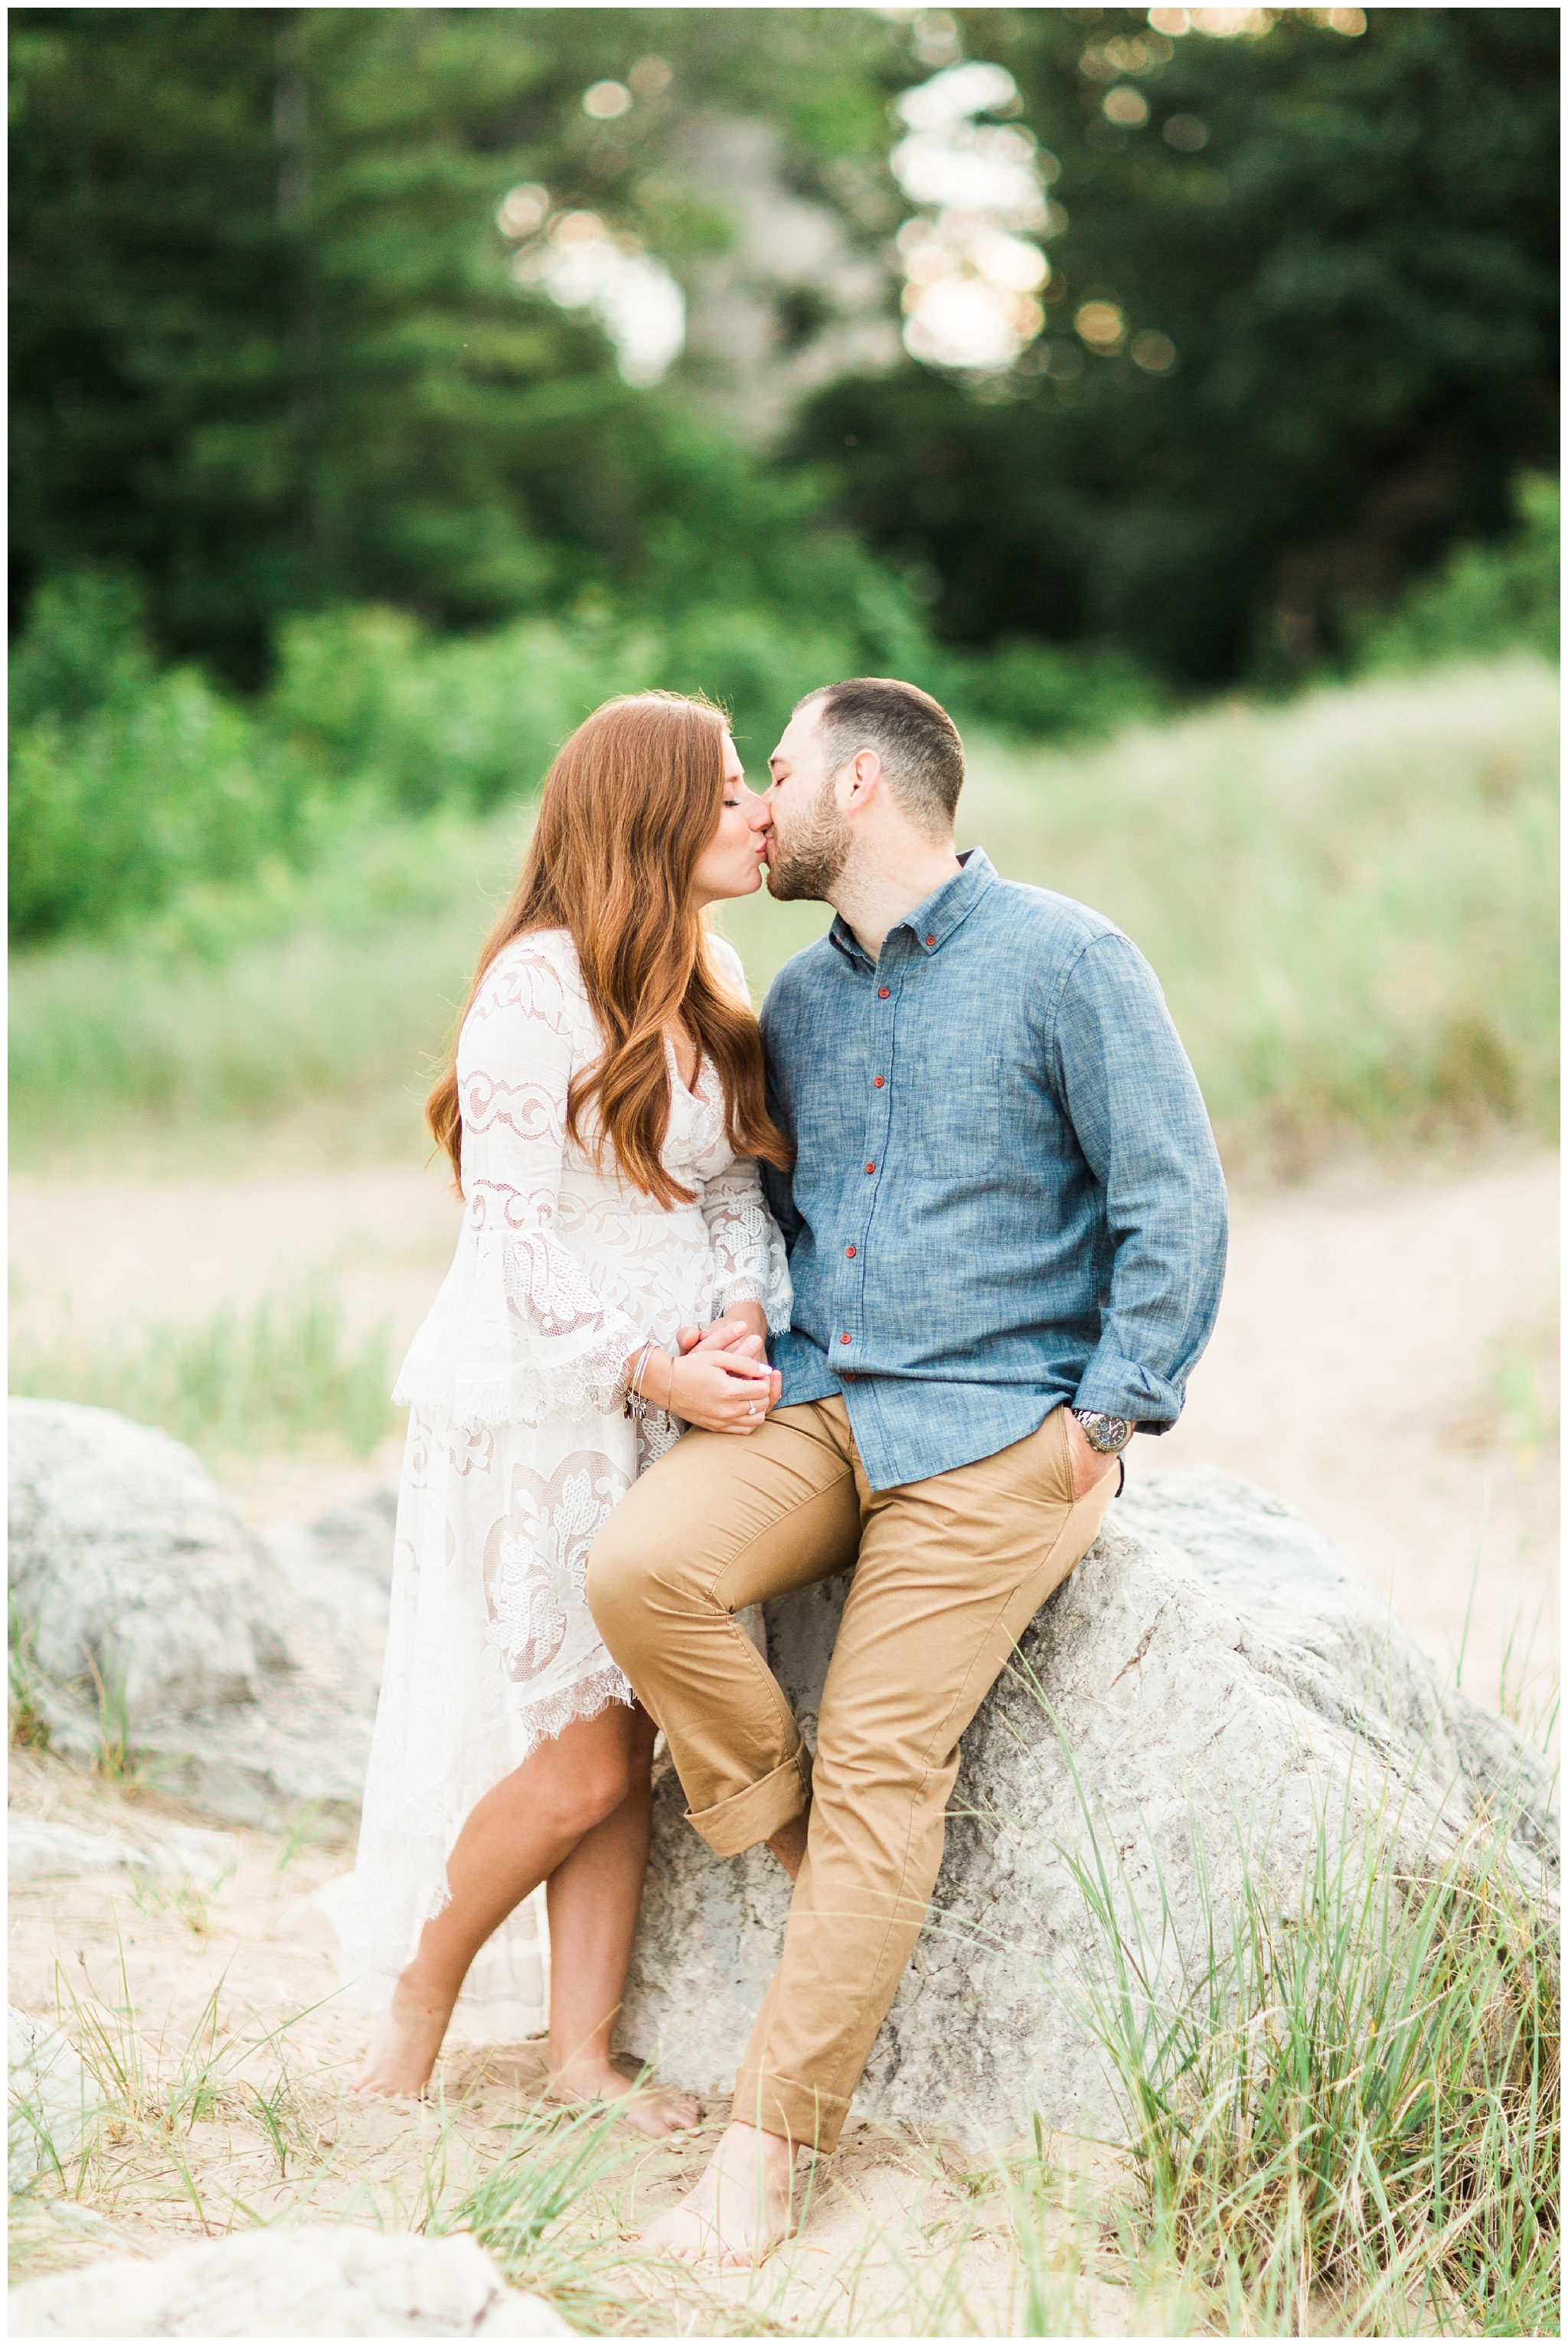 RebeccaHaleyPhotography_chicagoengagementsession_lakemichiganengagementsession_coloradoengagementphotographer_evanstonengagementphotographer_lighthousebeach_lighthousebeachengagementsession_0016.jpg